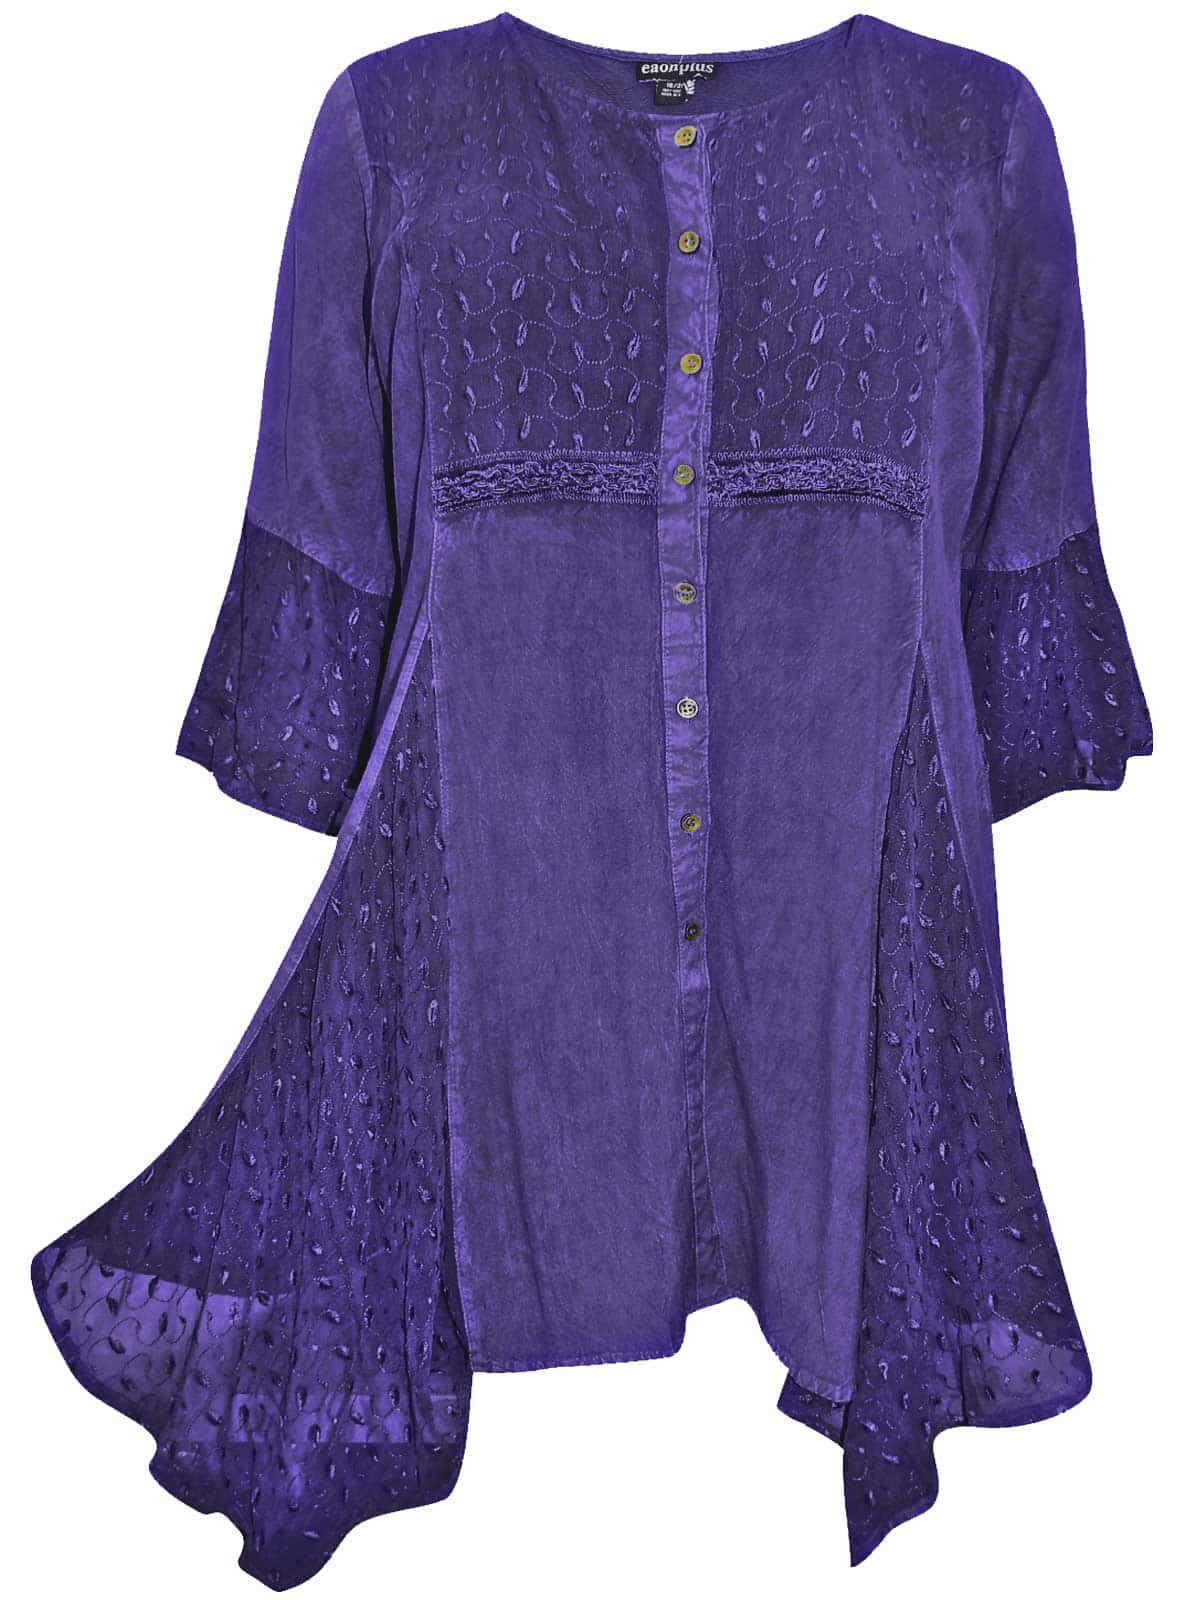 Shop plus size tops for women on sale with wholesale cheap price and fast delivery, and find more womens cute trendy plus size lace tops & bulk plus size tops online with drop shipping. 20 Next. Quick Shop Plus Size Shredding Cut T-shirt - Purple Iris 2x. VIP Quick Shop Plus Size Stripe Faux Leather Insert Sweater.